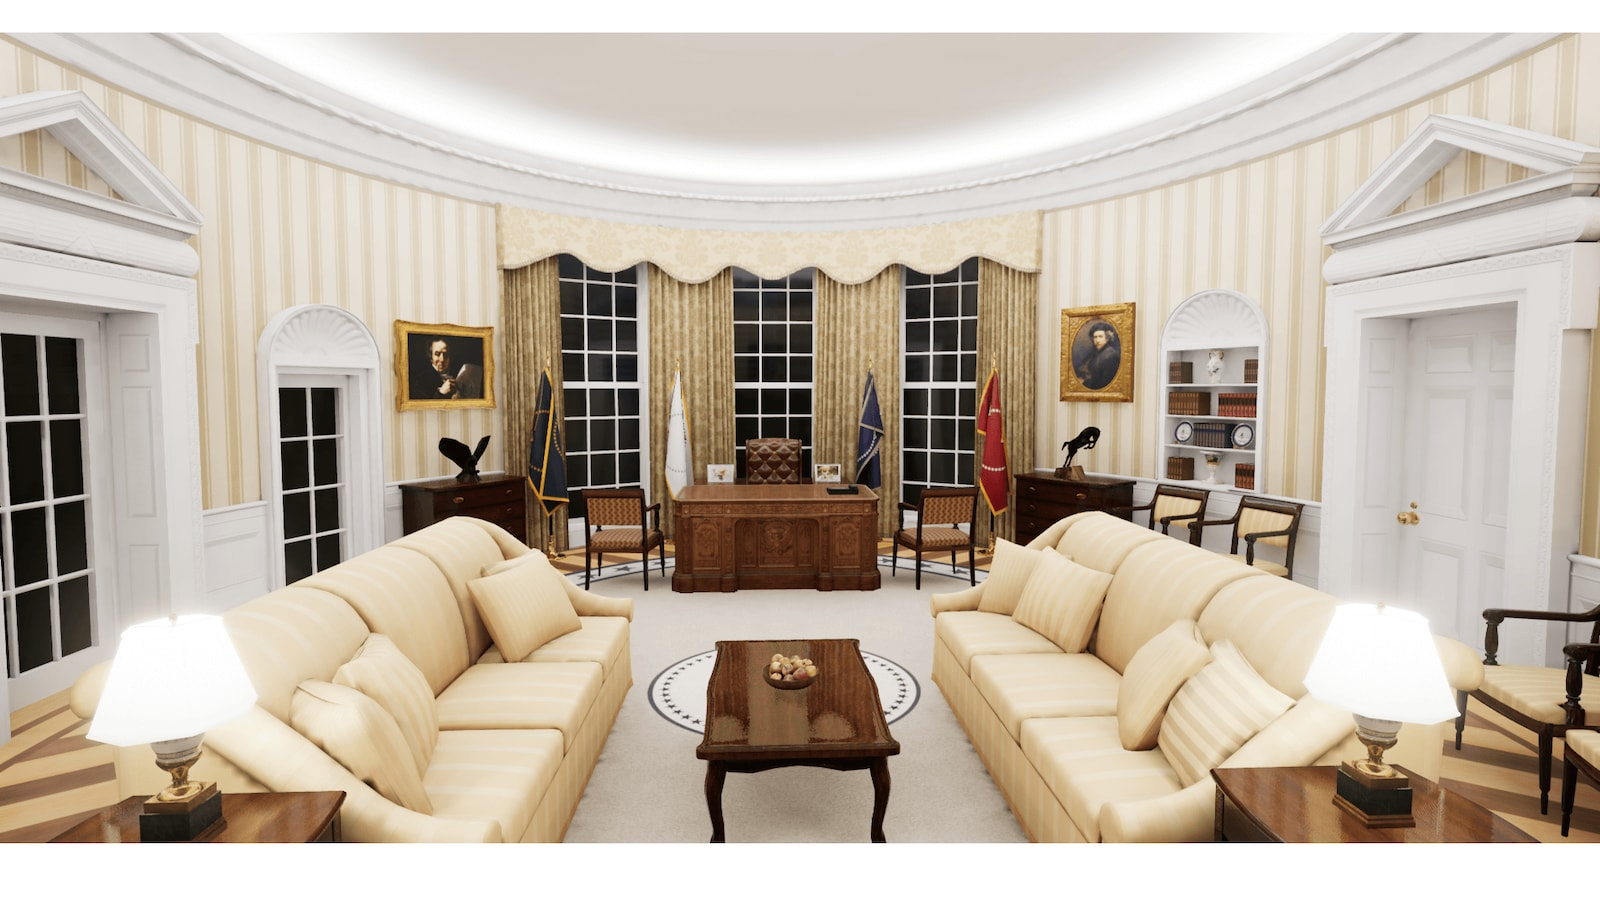 Oval Office in Architectural Visualization - UE Marketplace